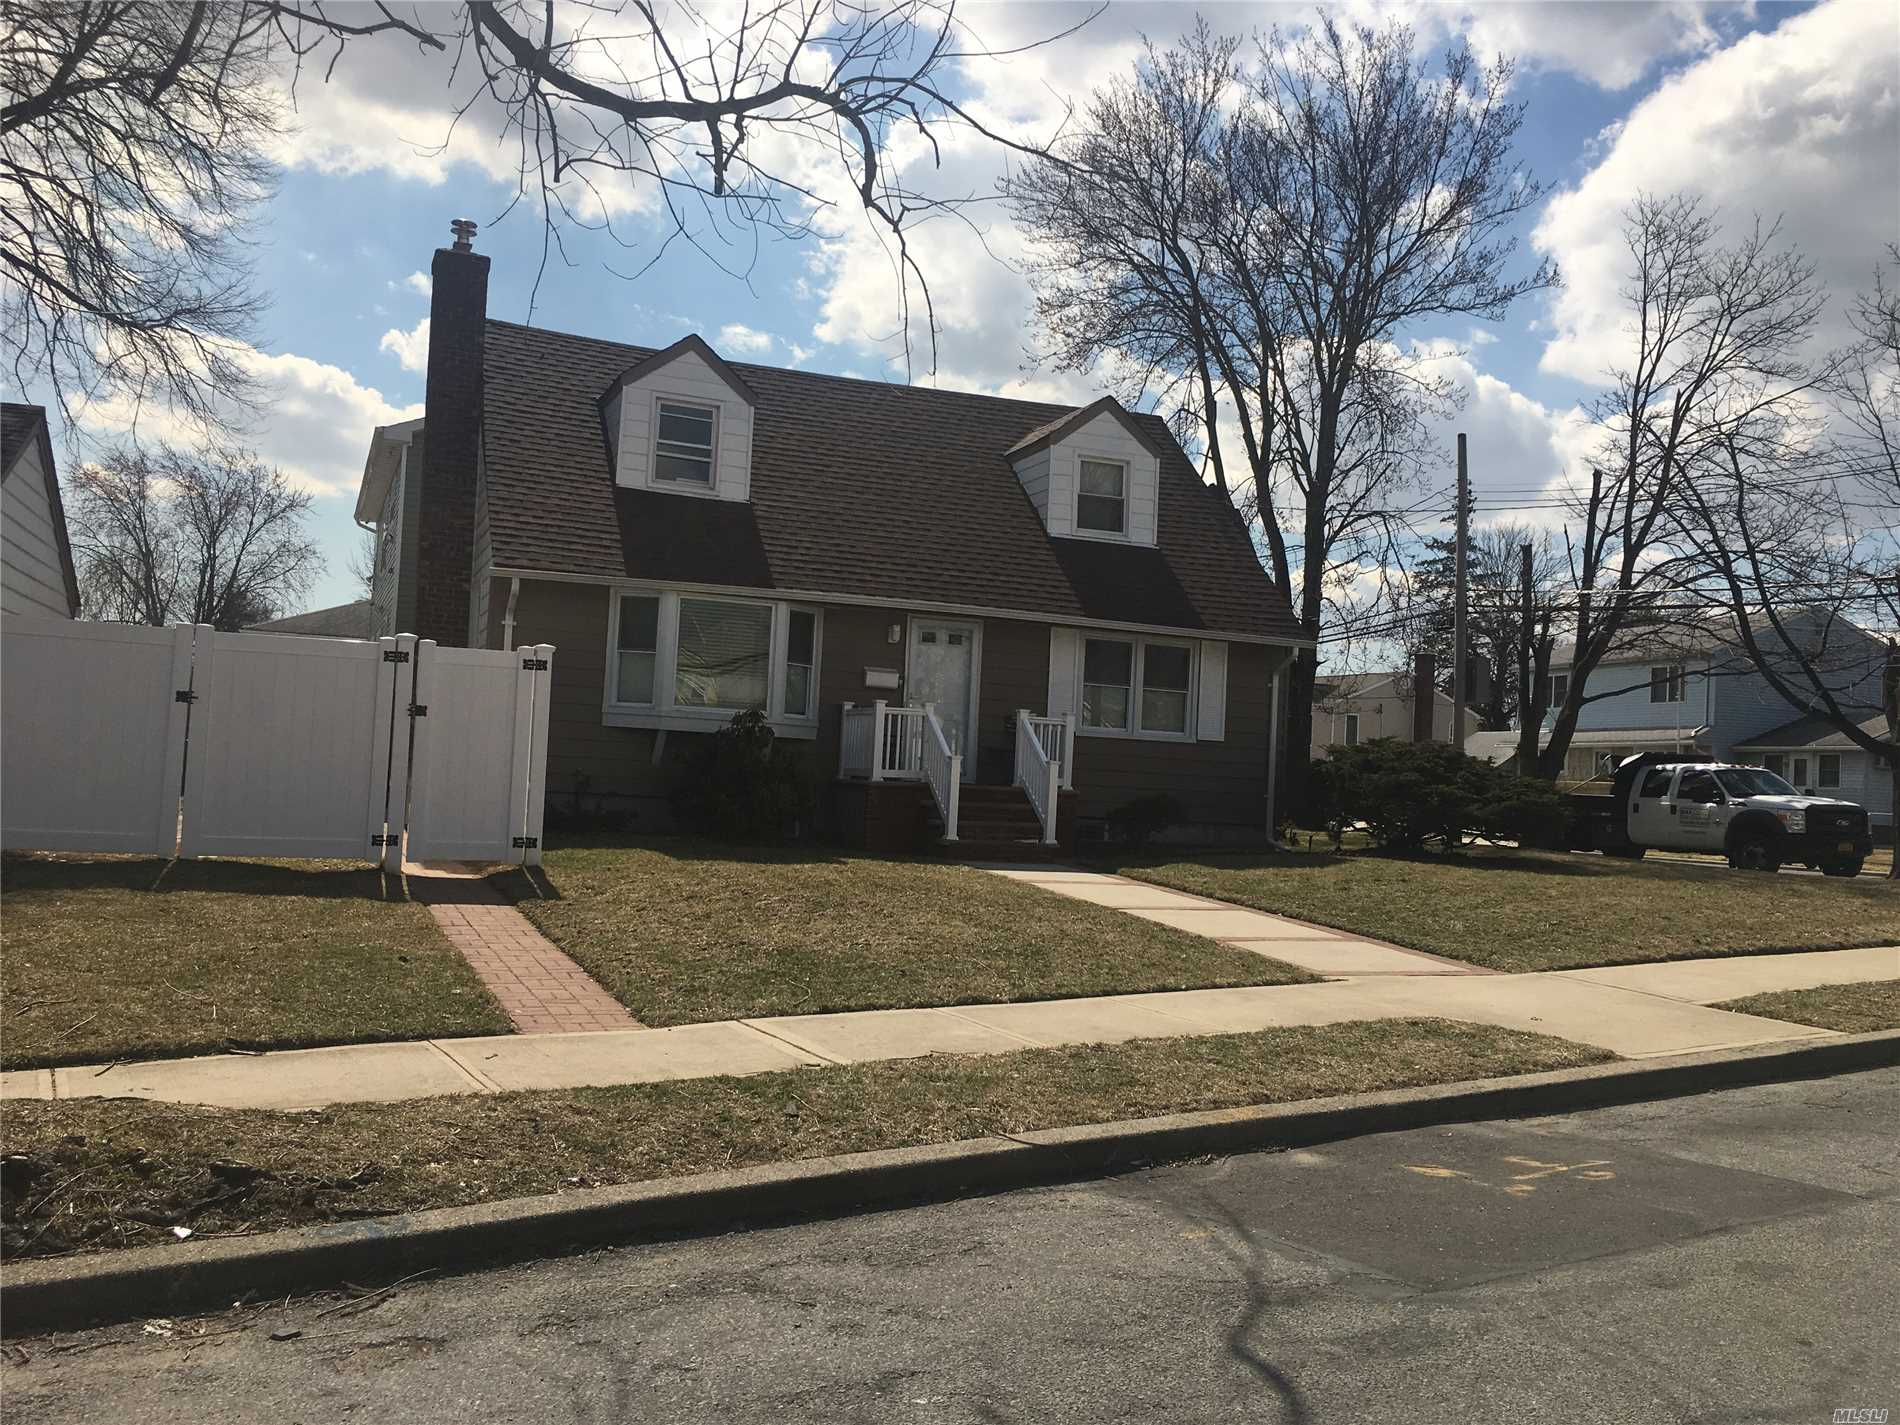 This stunning1 family home is on a large lot in Elmont NY. All bedrooms updated with connections, charming and comfortable home. 4Brs, Living room and 2.5 bathrooms, Kitchen, Det garage and much more. Updated throughout, good size for a family. From the open concept kitchen and living space to the large shaded backyard, Great also for Investment.